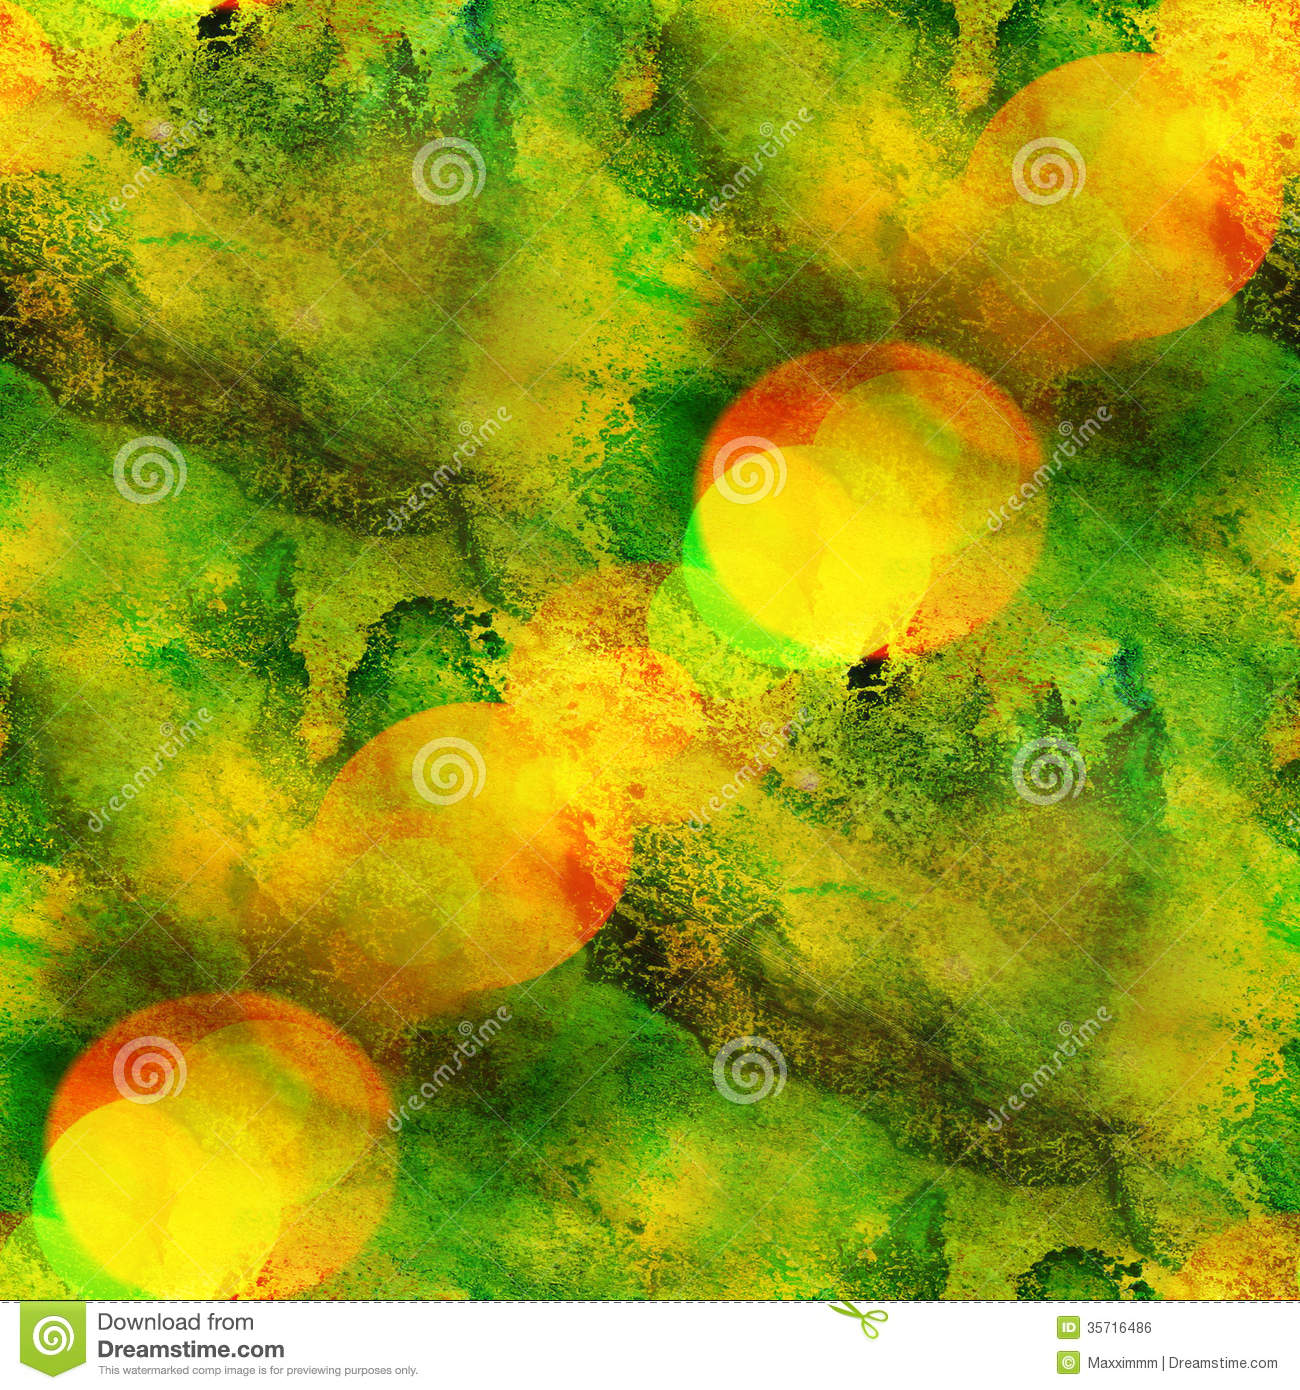 Background Seamless Watercolor Texture Abstract Royalty Free Stock ...